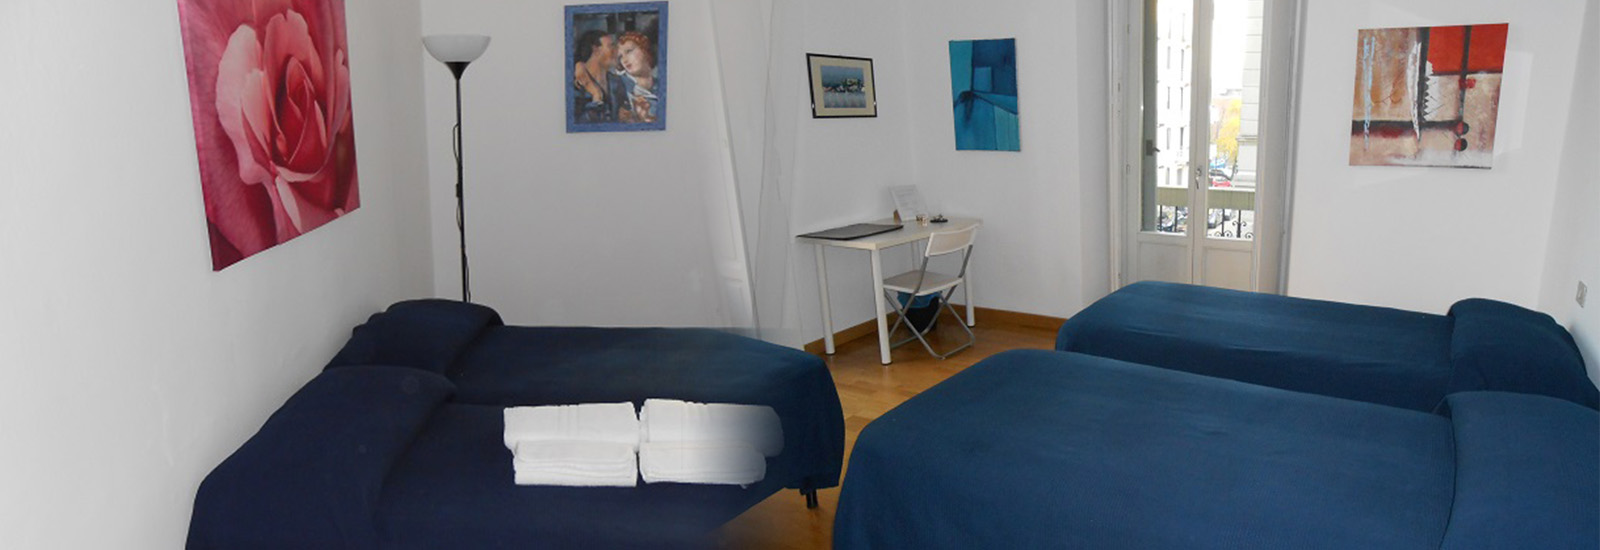 Home bed breakfast aldebaran milano for Bed and breakfast milano